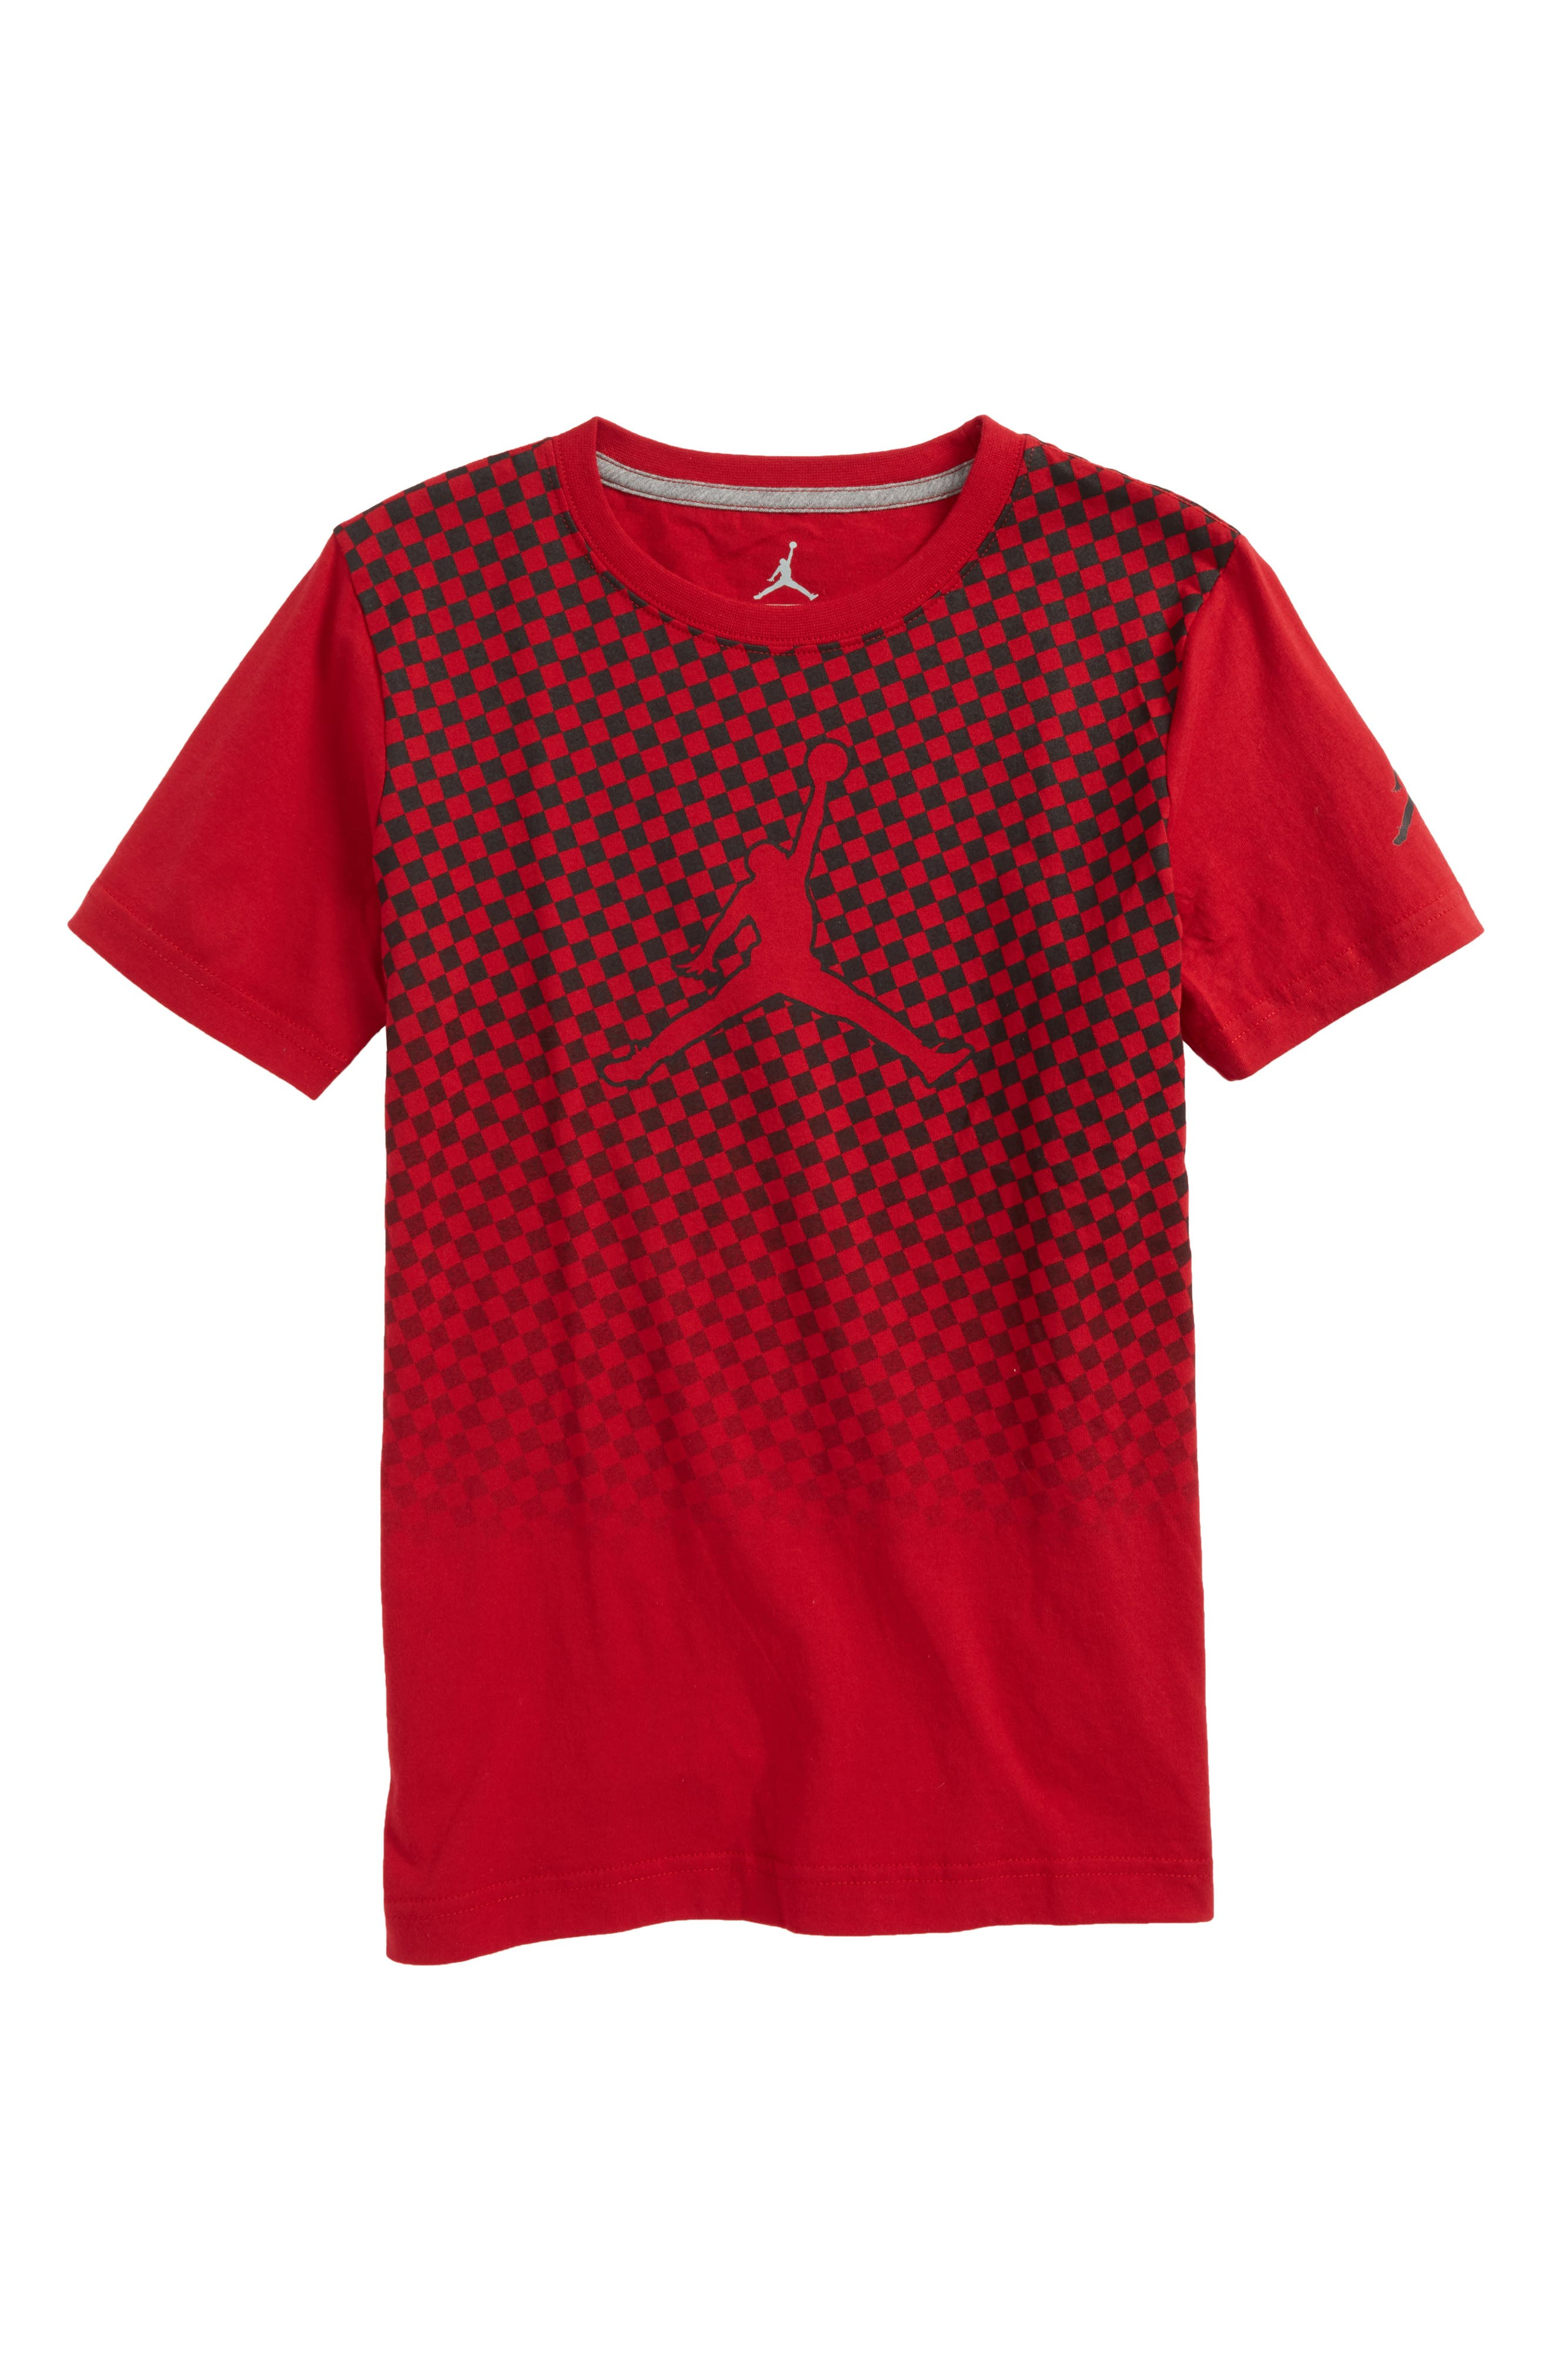 Jordan Carbon High T-Shirt,                             Main thumbnail 1, color,                             606